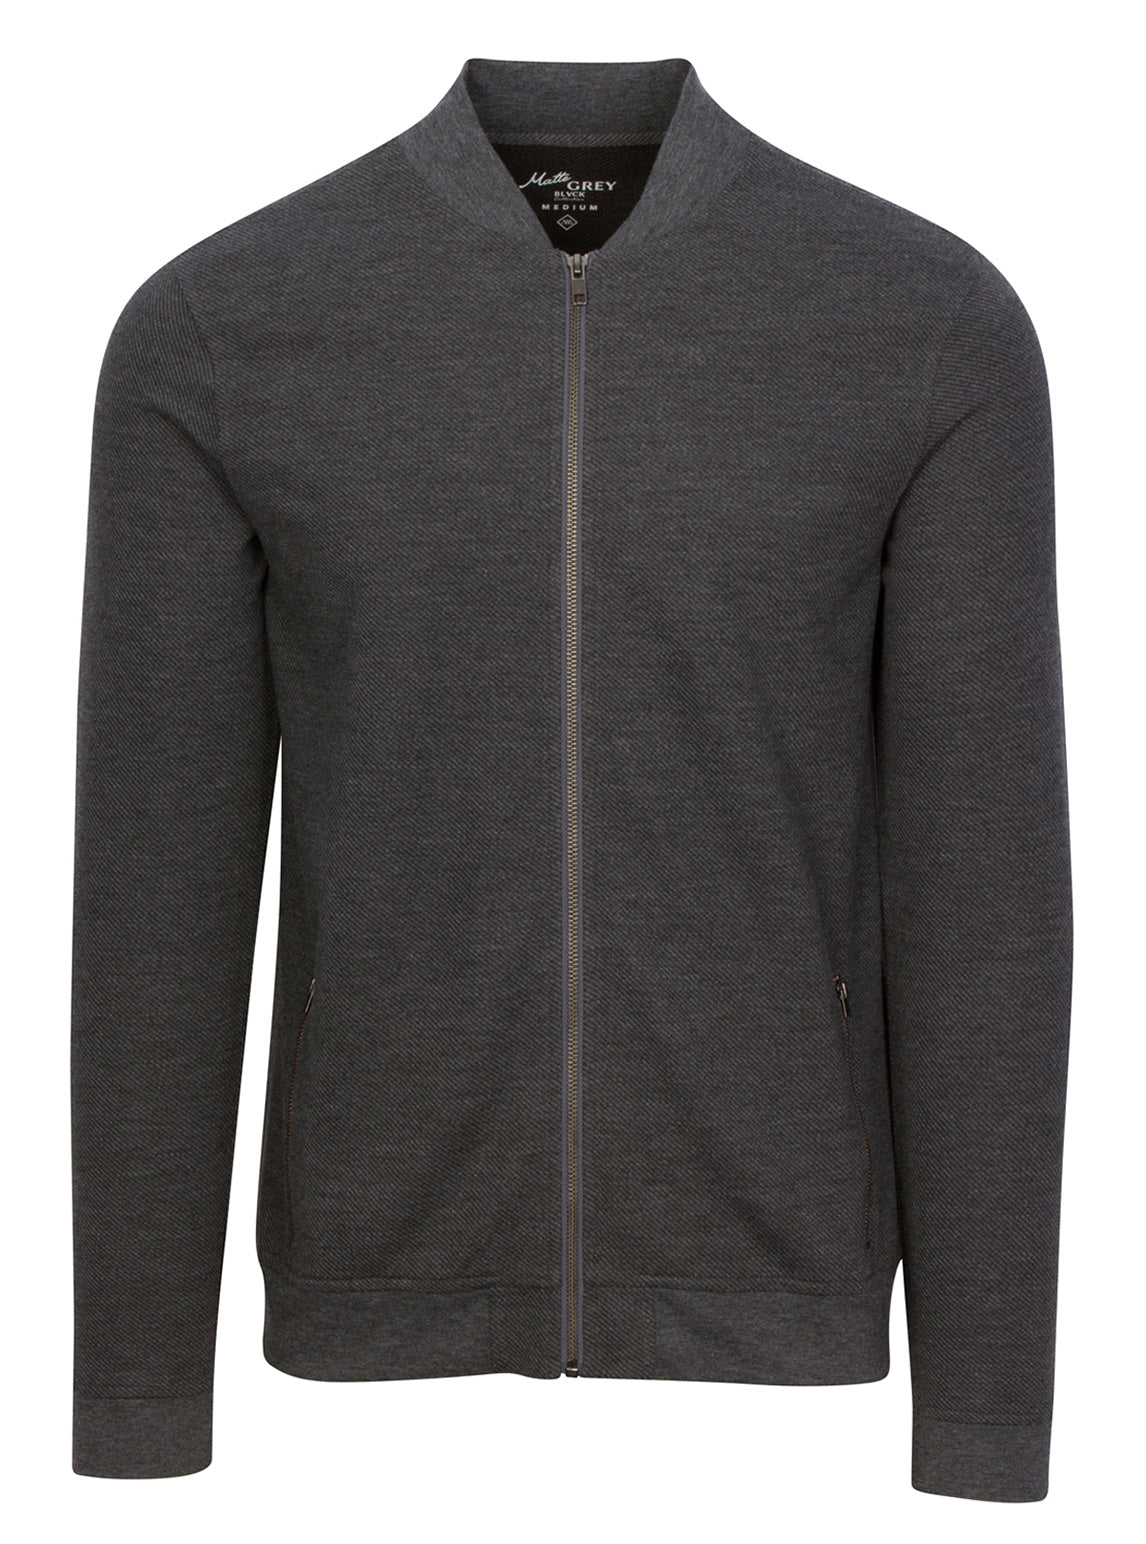 JC Full Zip - Charcoal